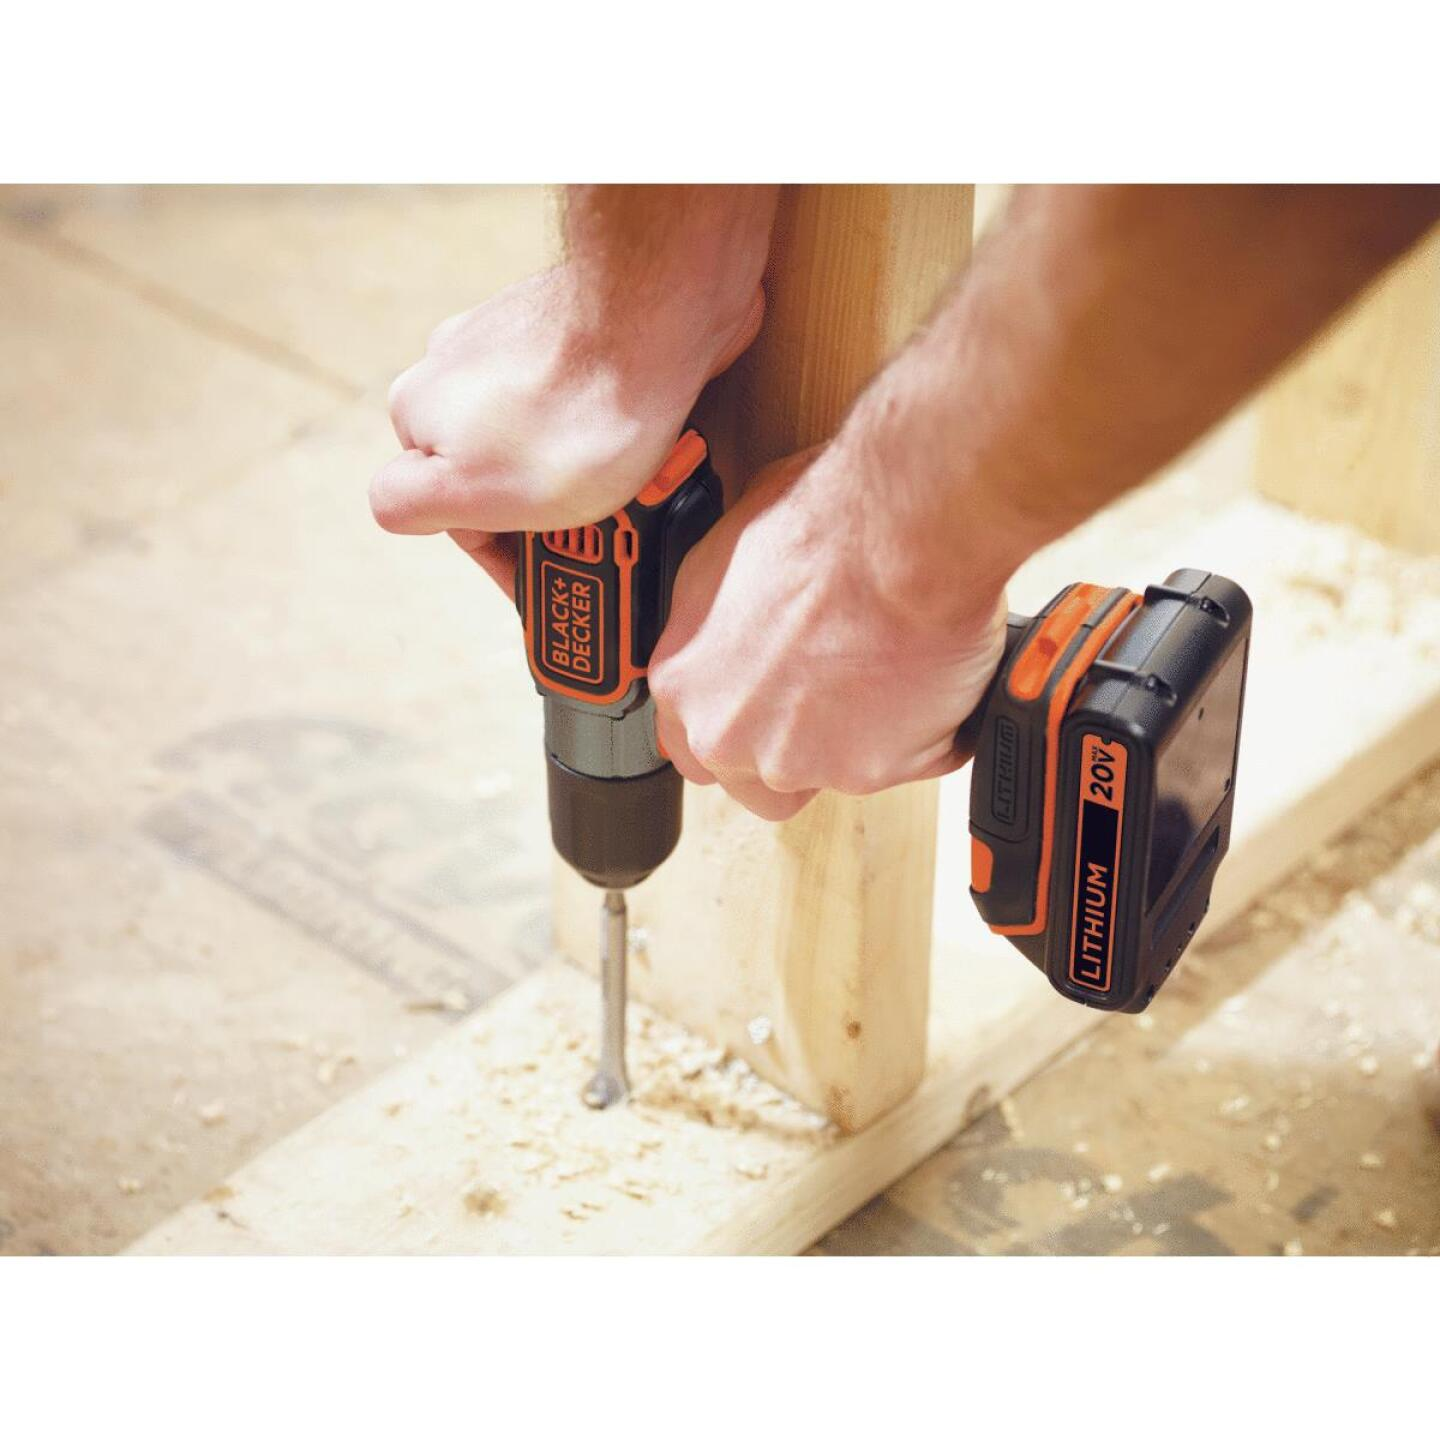 Black & Decker 20 Volt MAX Lithium-Ion 3/8 In. Cordless Drill Kit with AutoSense Technology Image 6